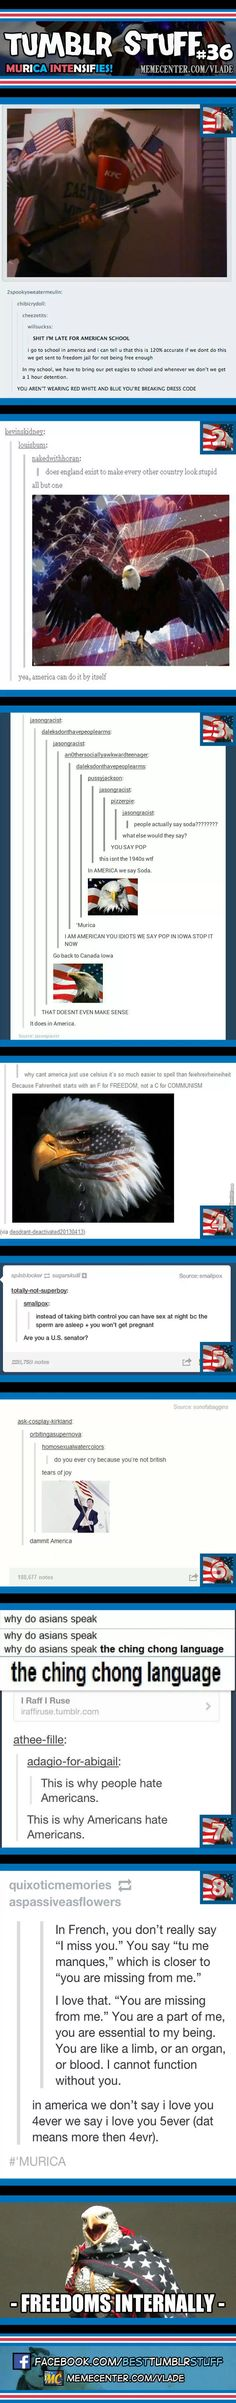 Tumblr Stuff #36: 'Murica intensifies! rofl